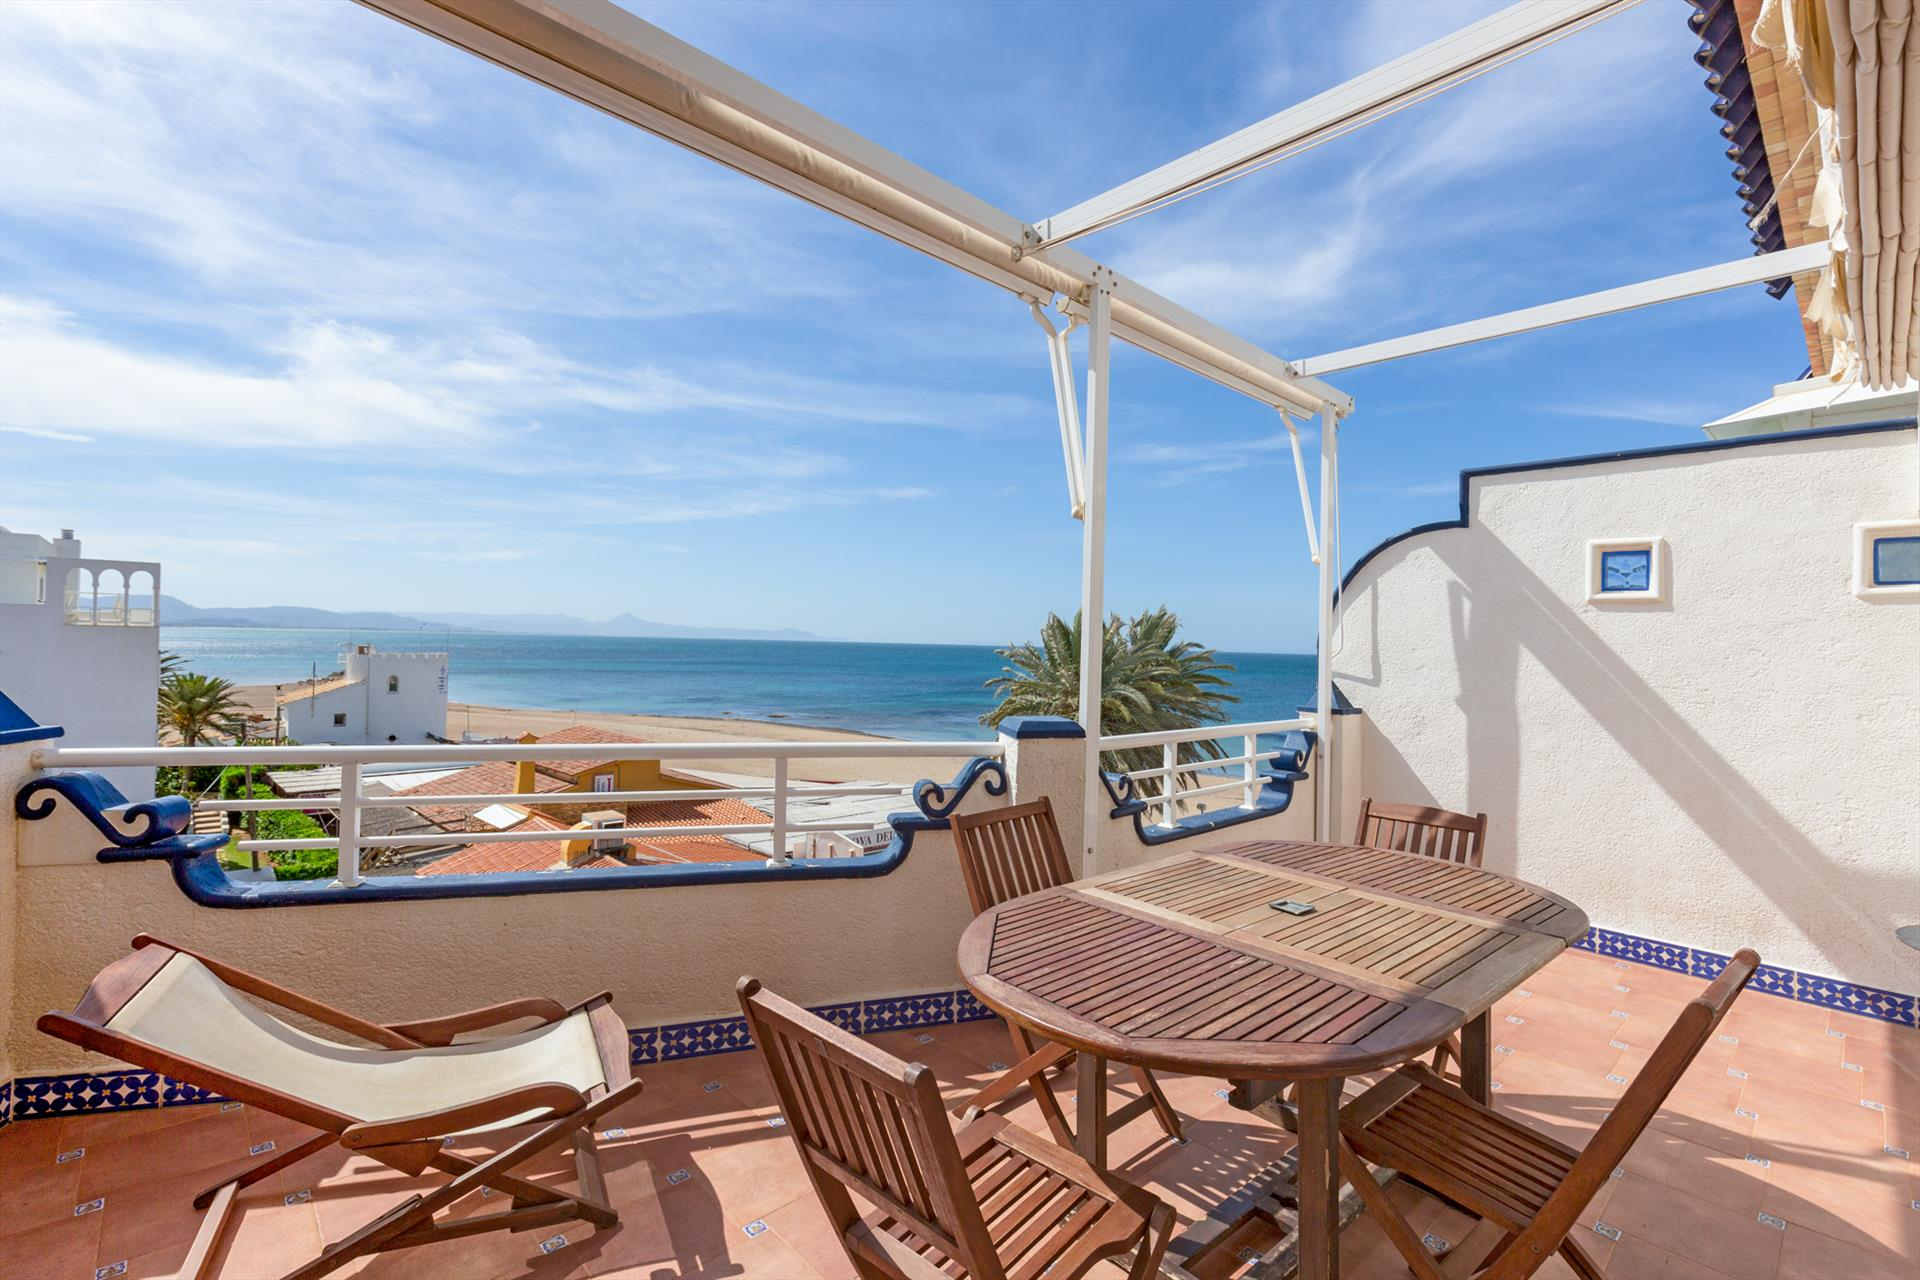 Atico Mar Roja Medina Molins AT2201, Wonderful and cheerful holiday house in Denia, on the Costa Blanca, Spain  with communal pool for 6 persons.....